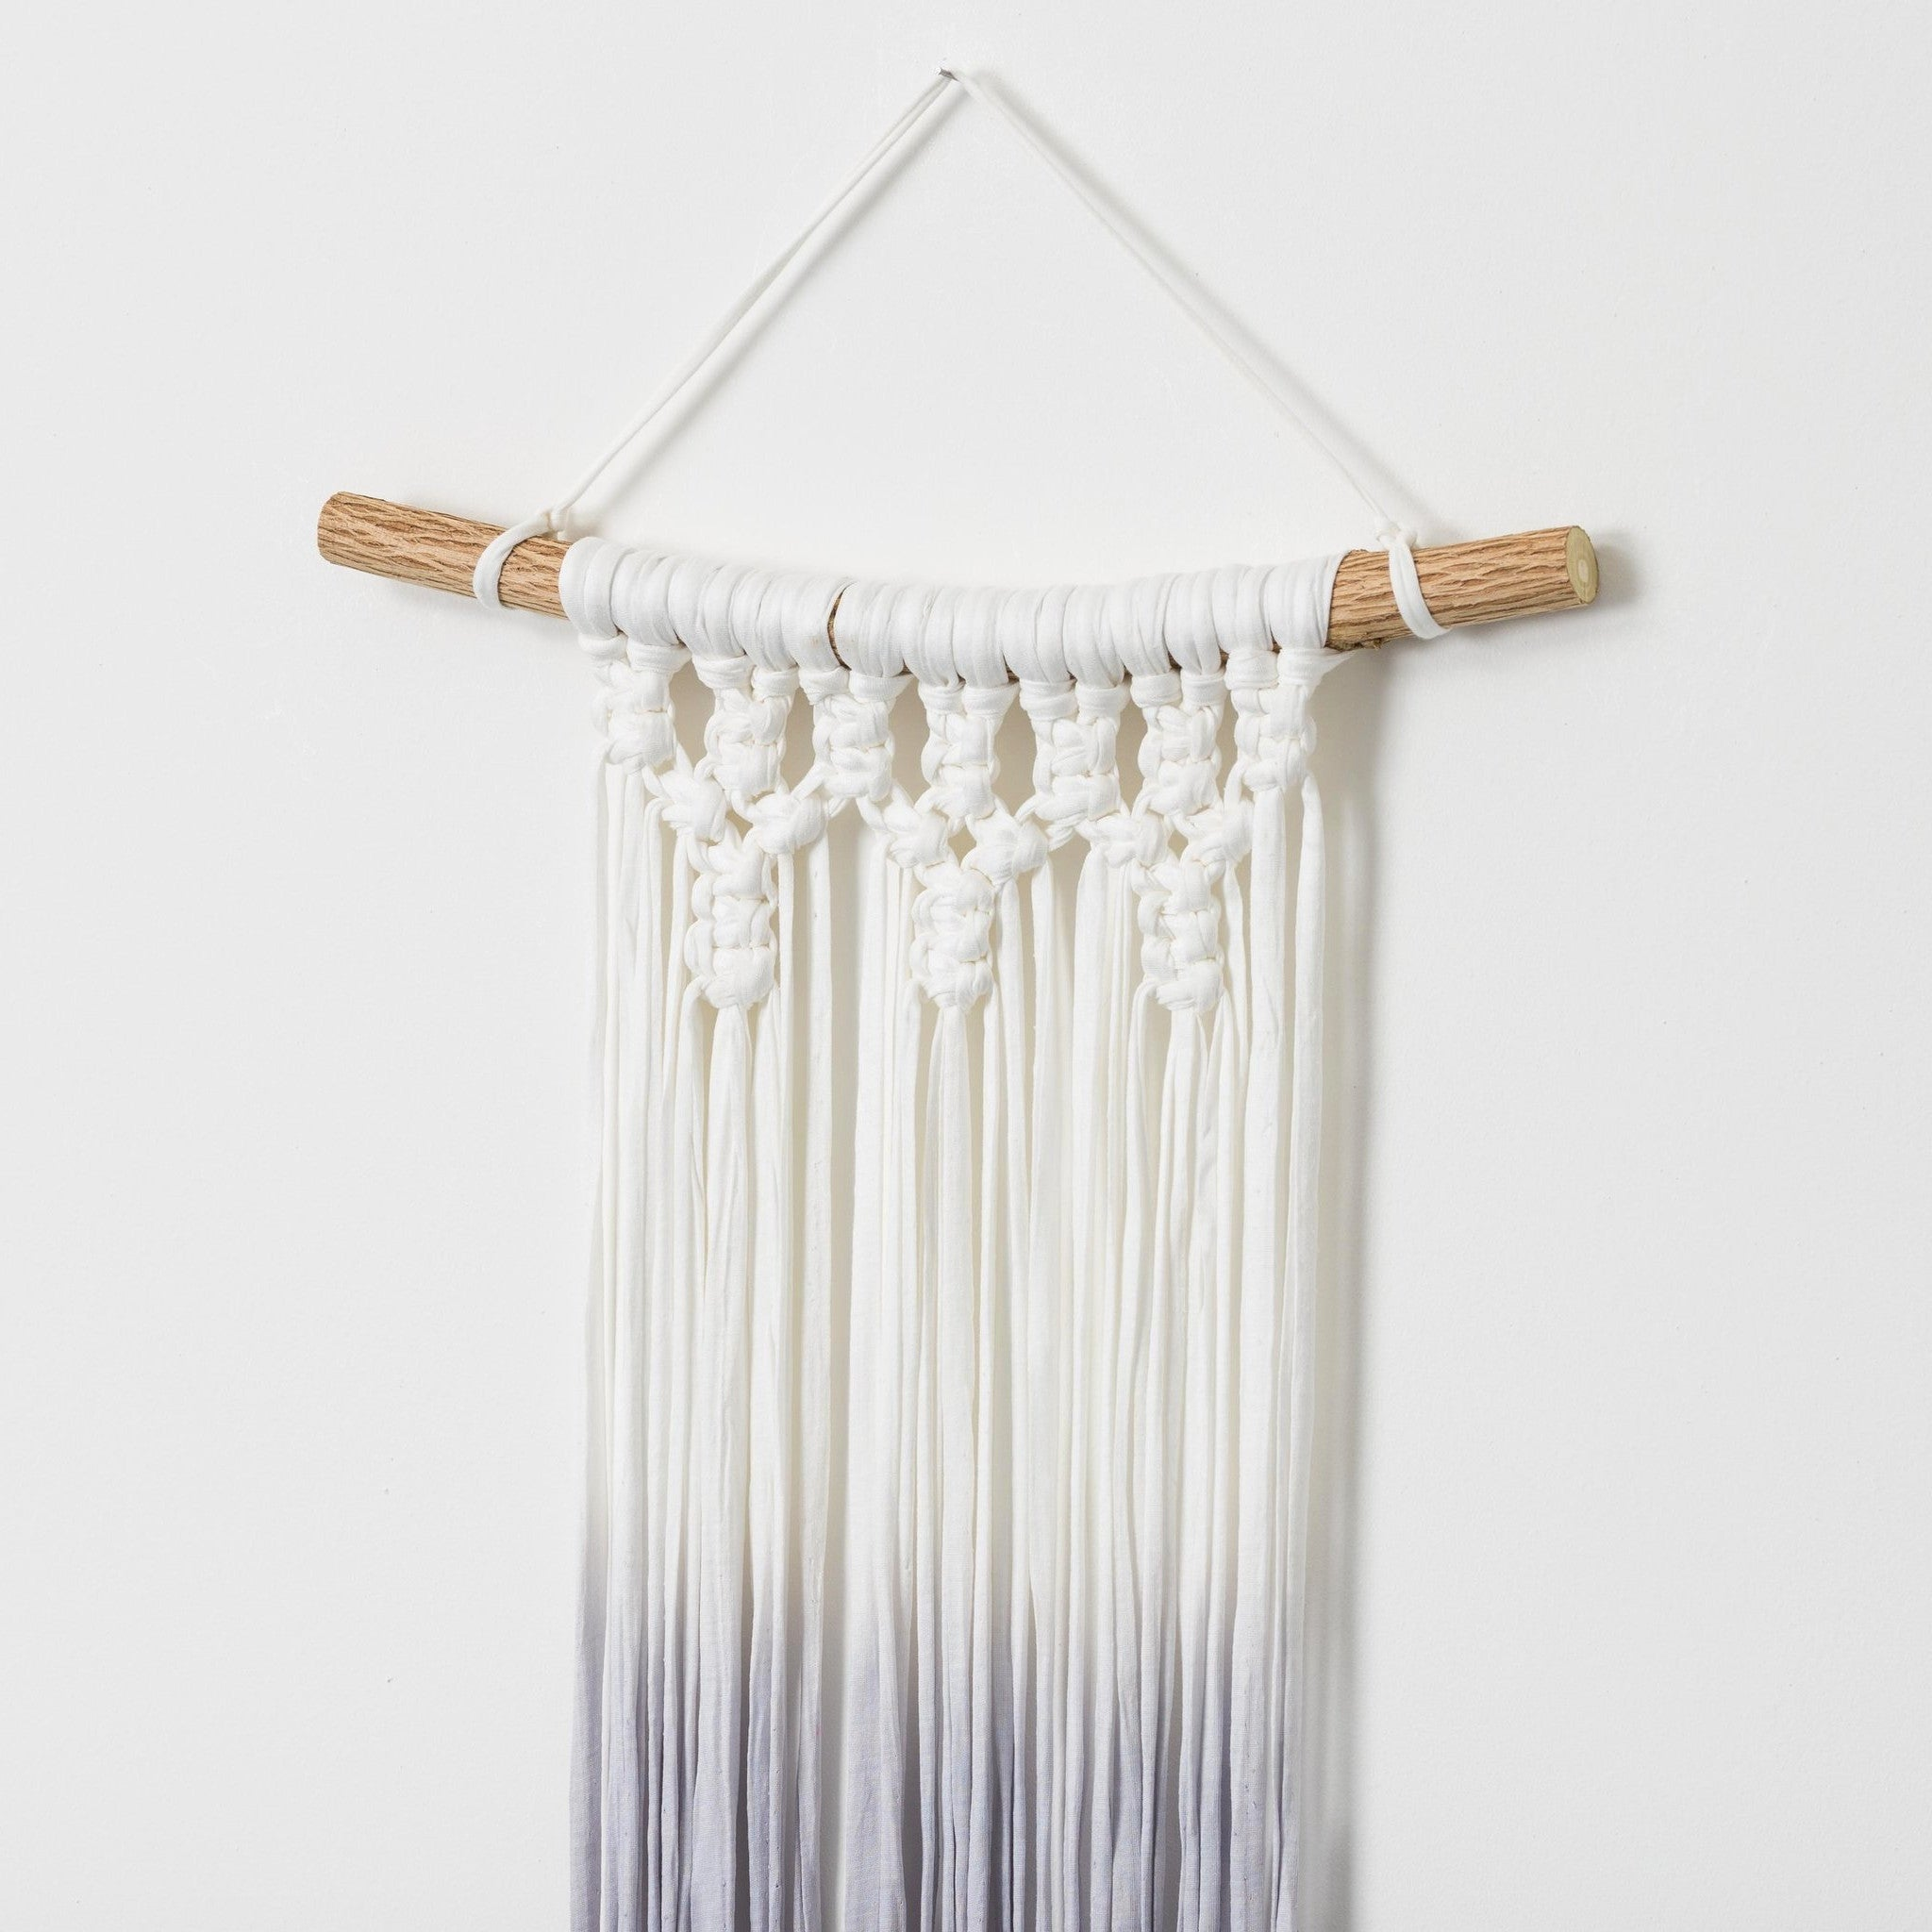 Ombre grey wall hanging - Mara studio